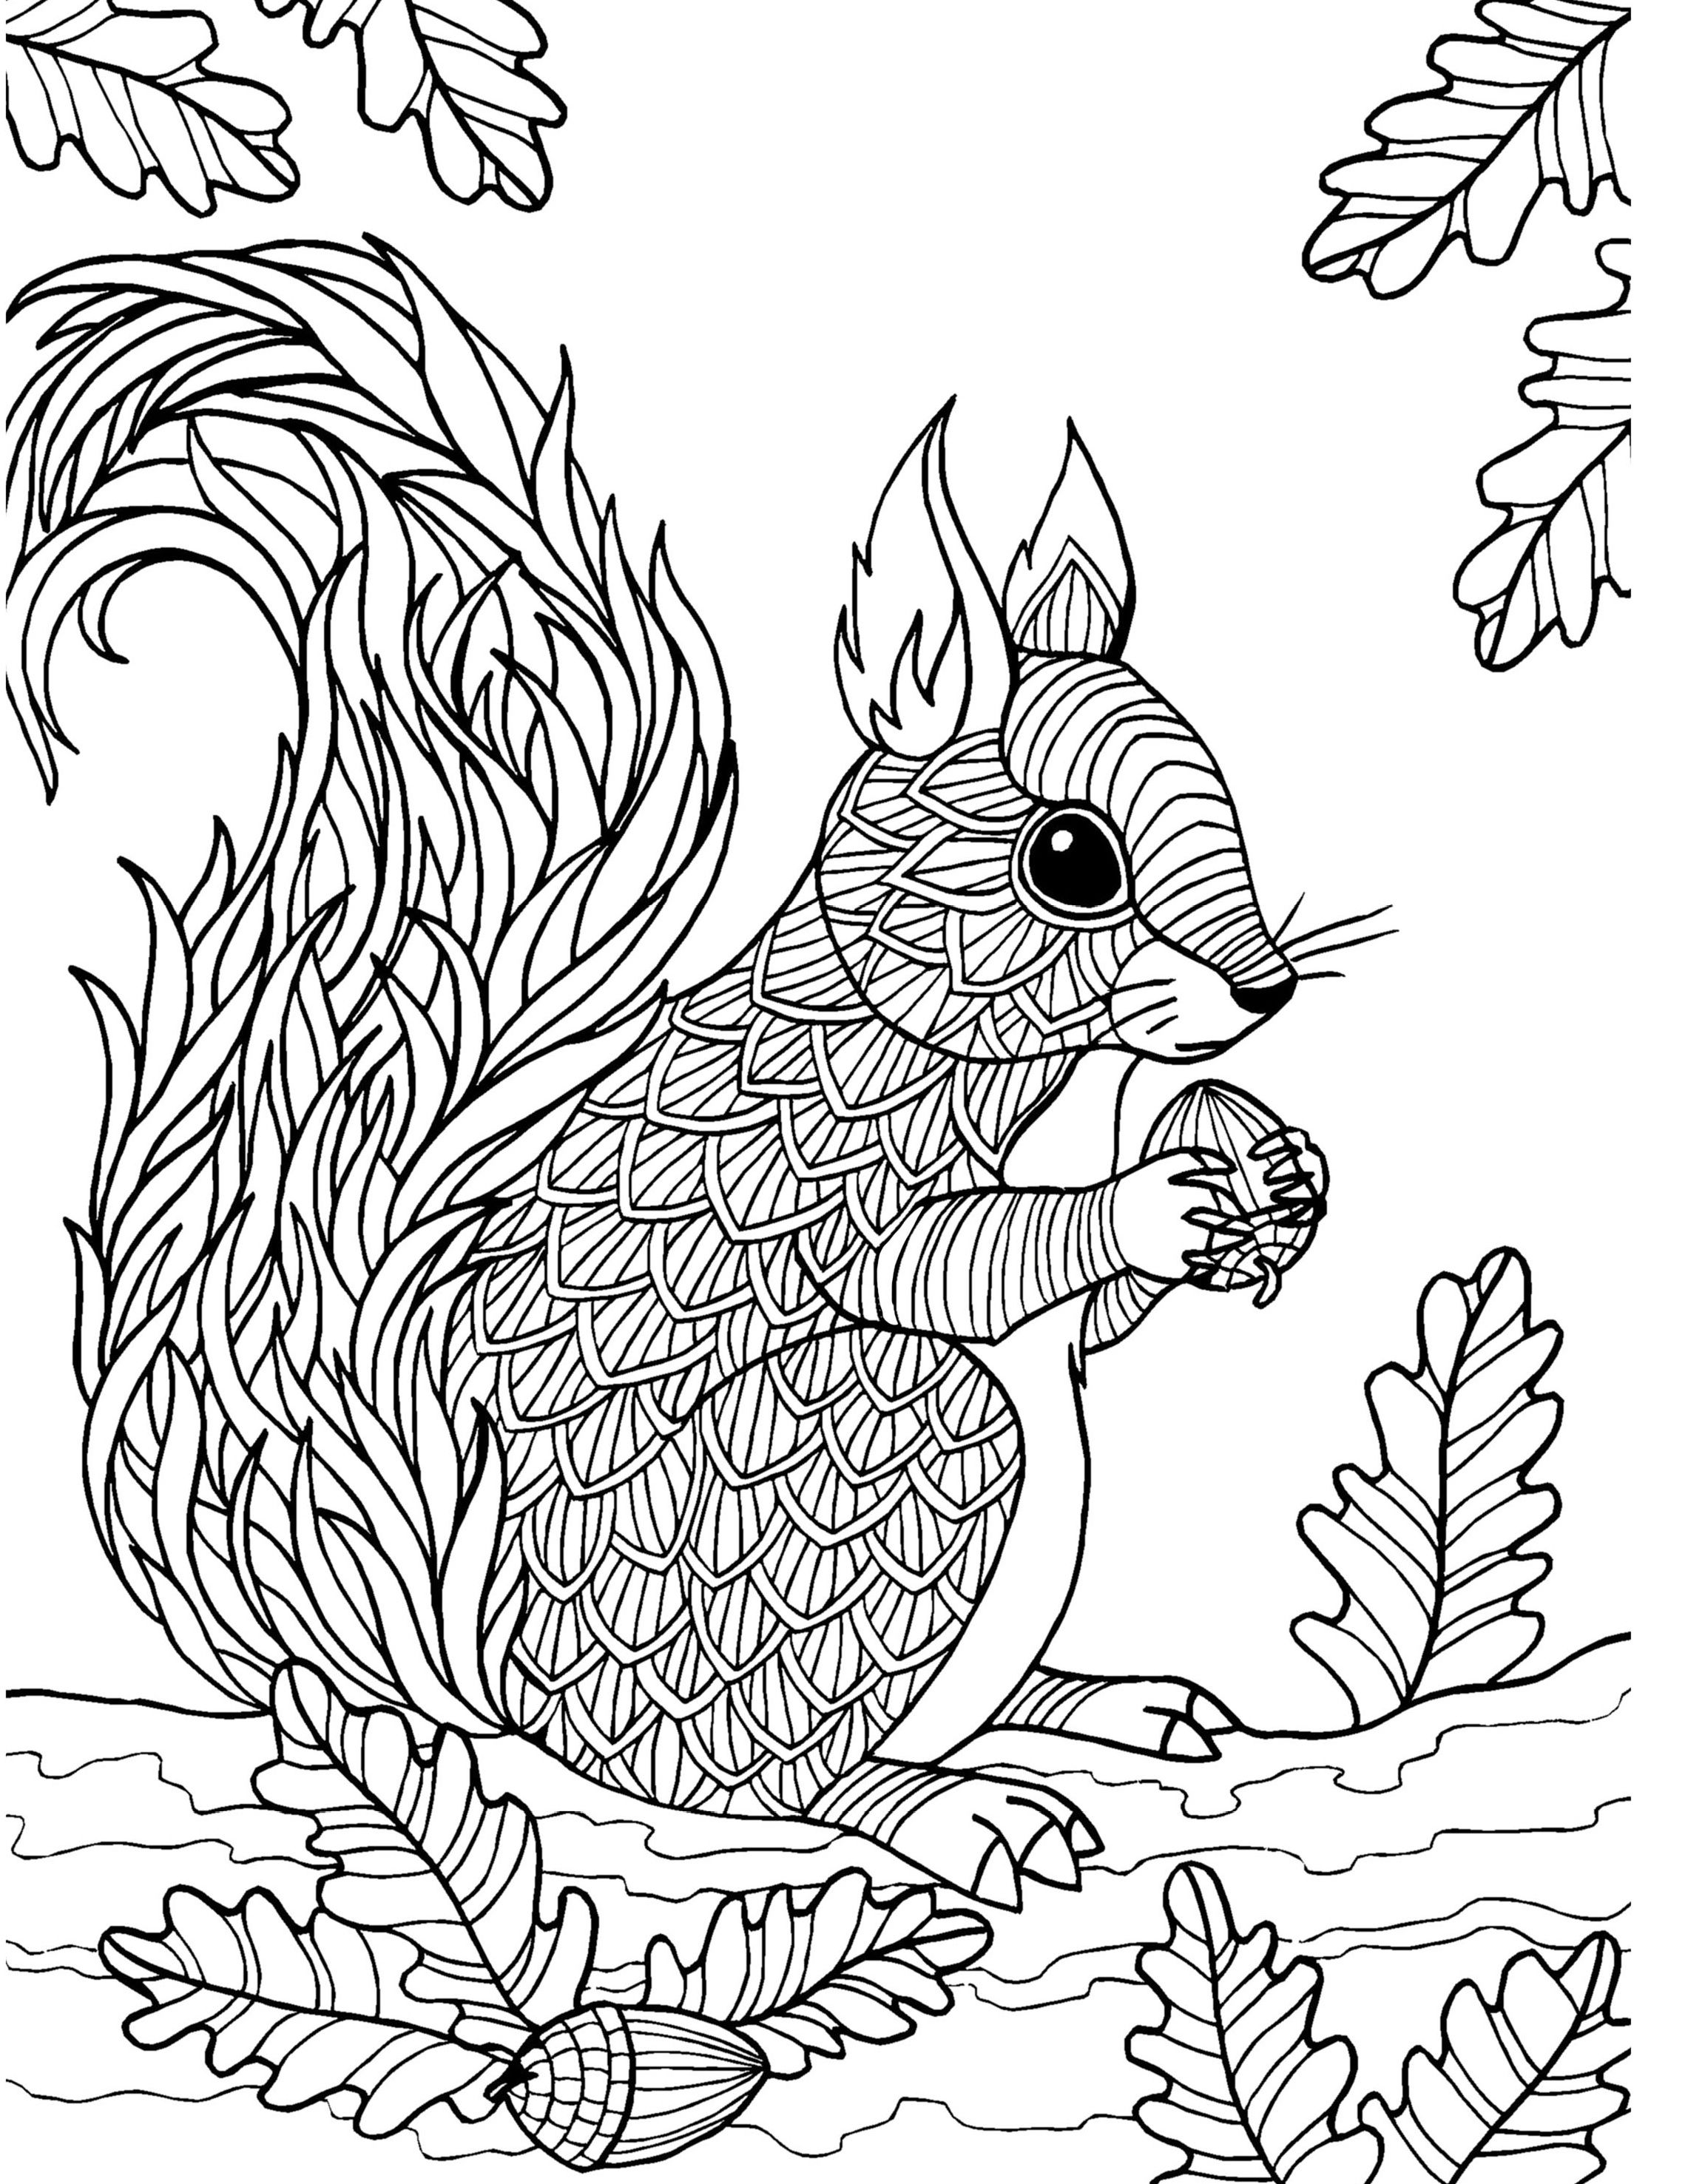 squirrel coloring pages free free printable squirrel coloring pages for kids free coloring squirrel pages